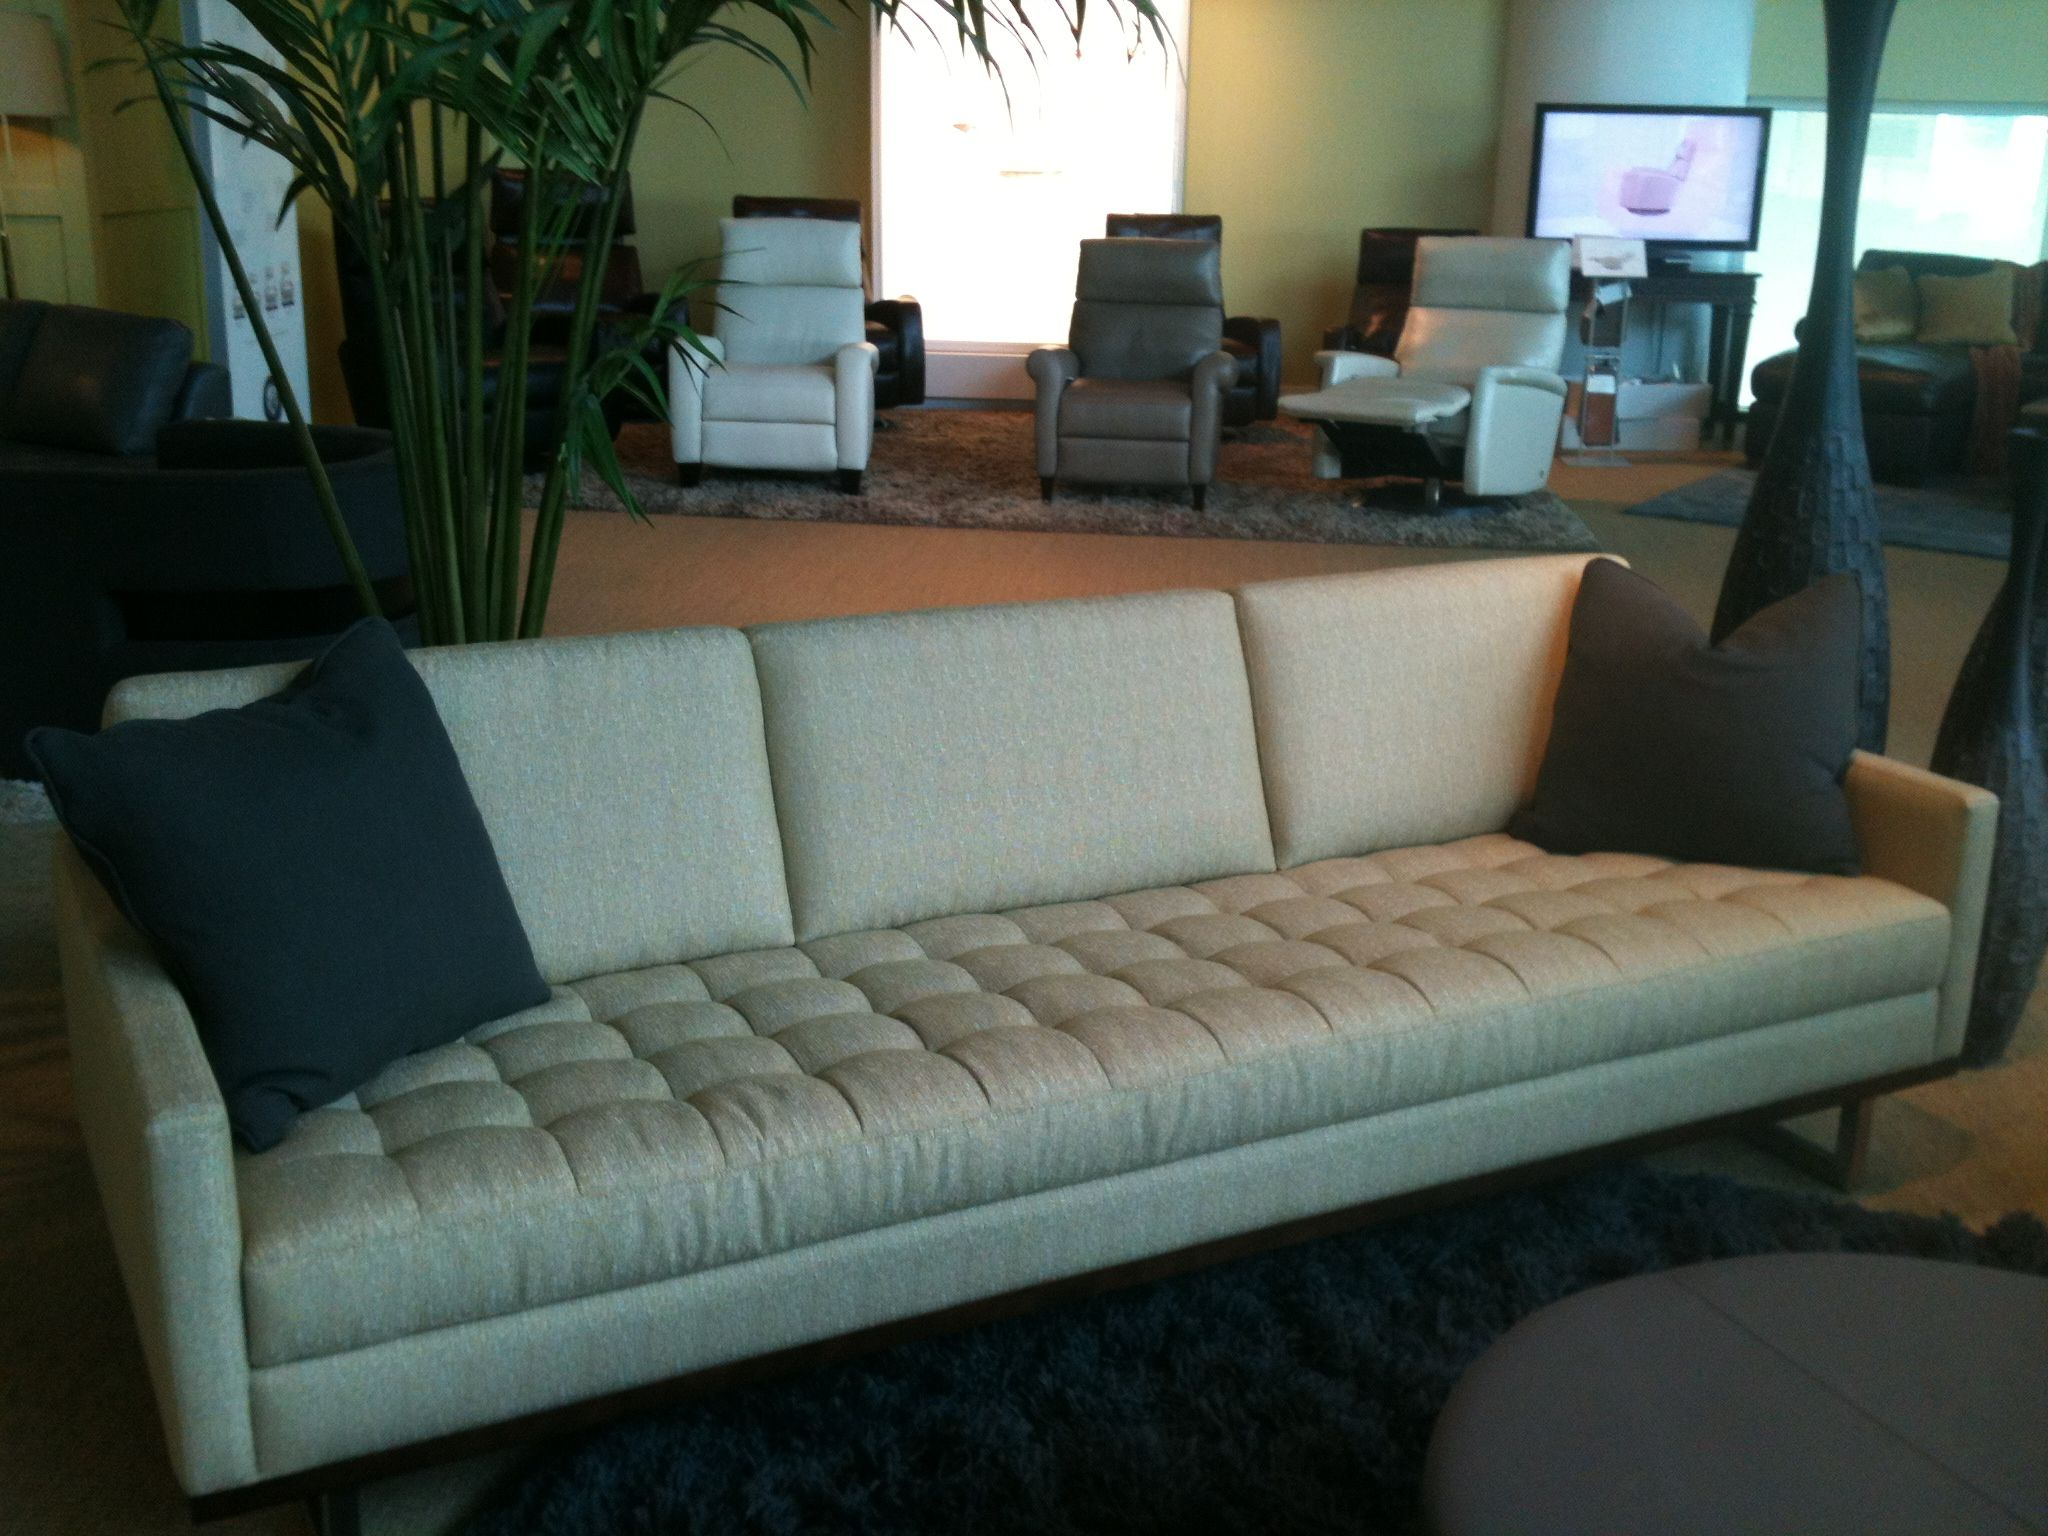 The Tristan sofa from American Leather